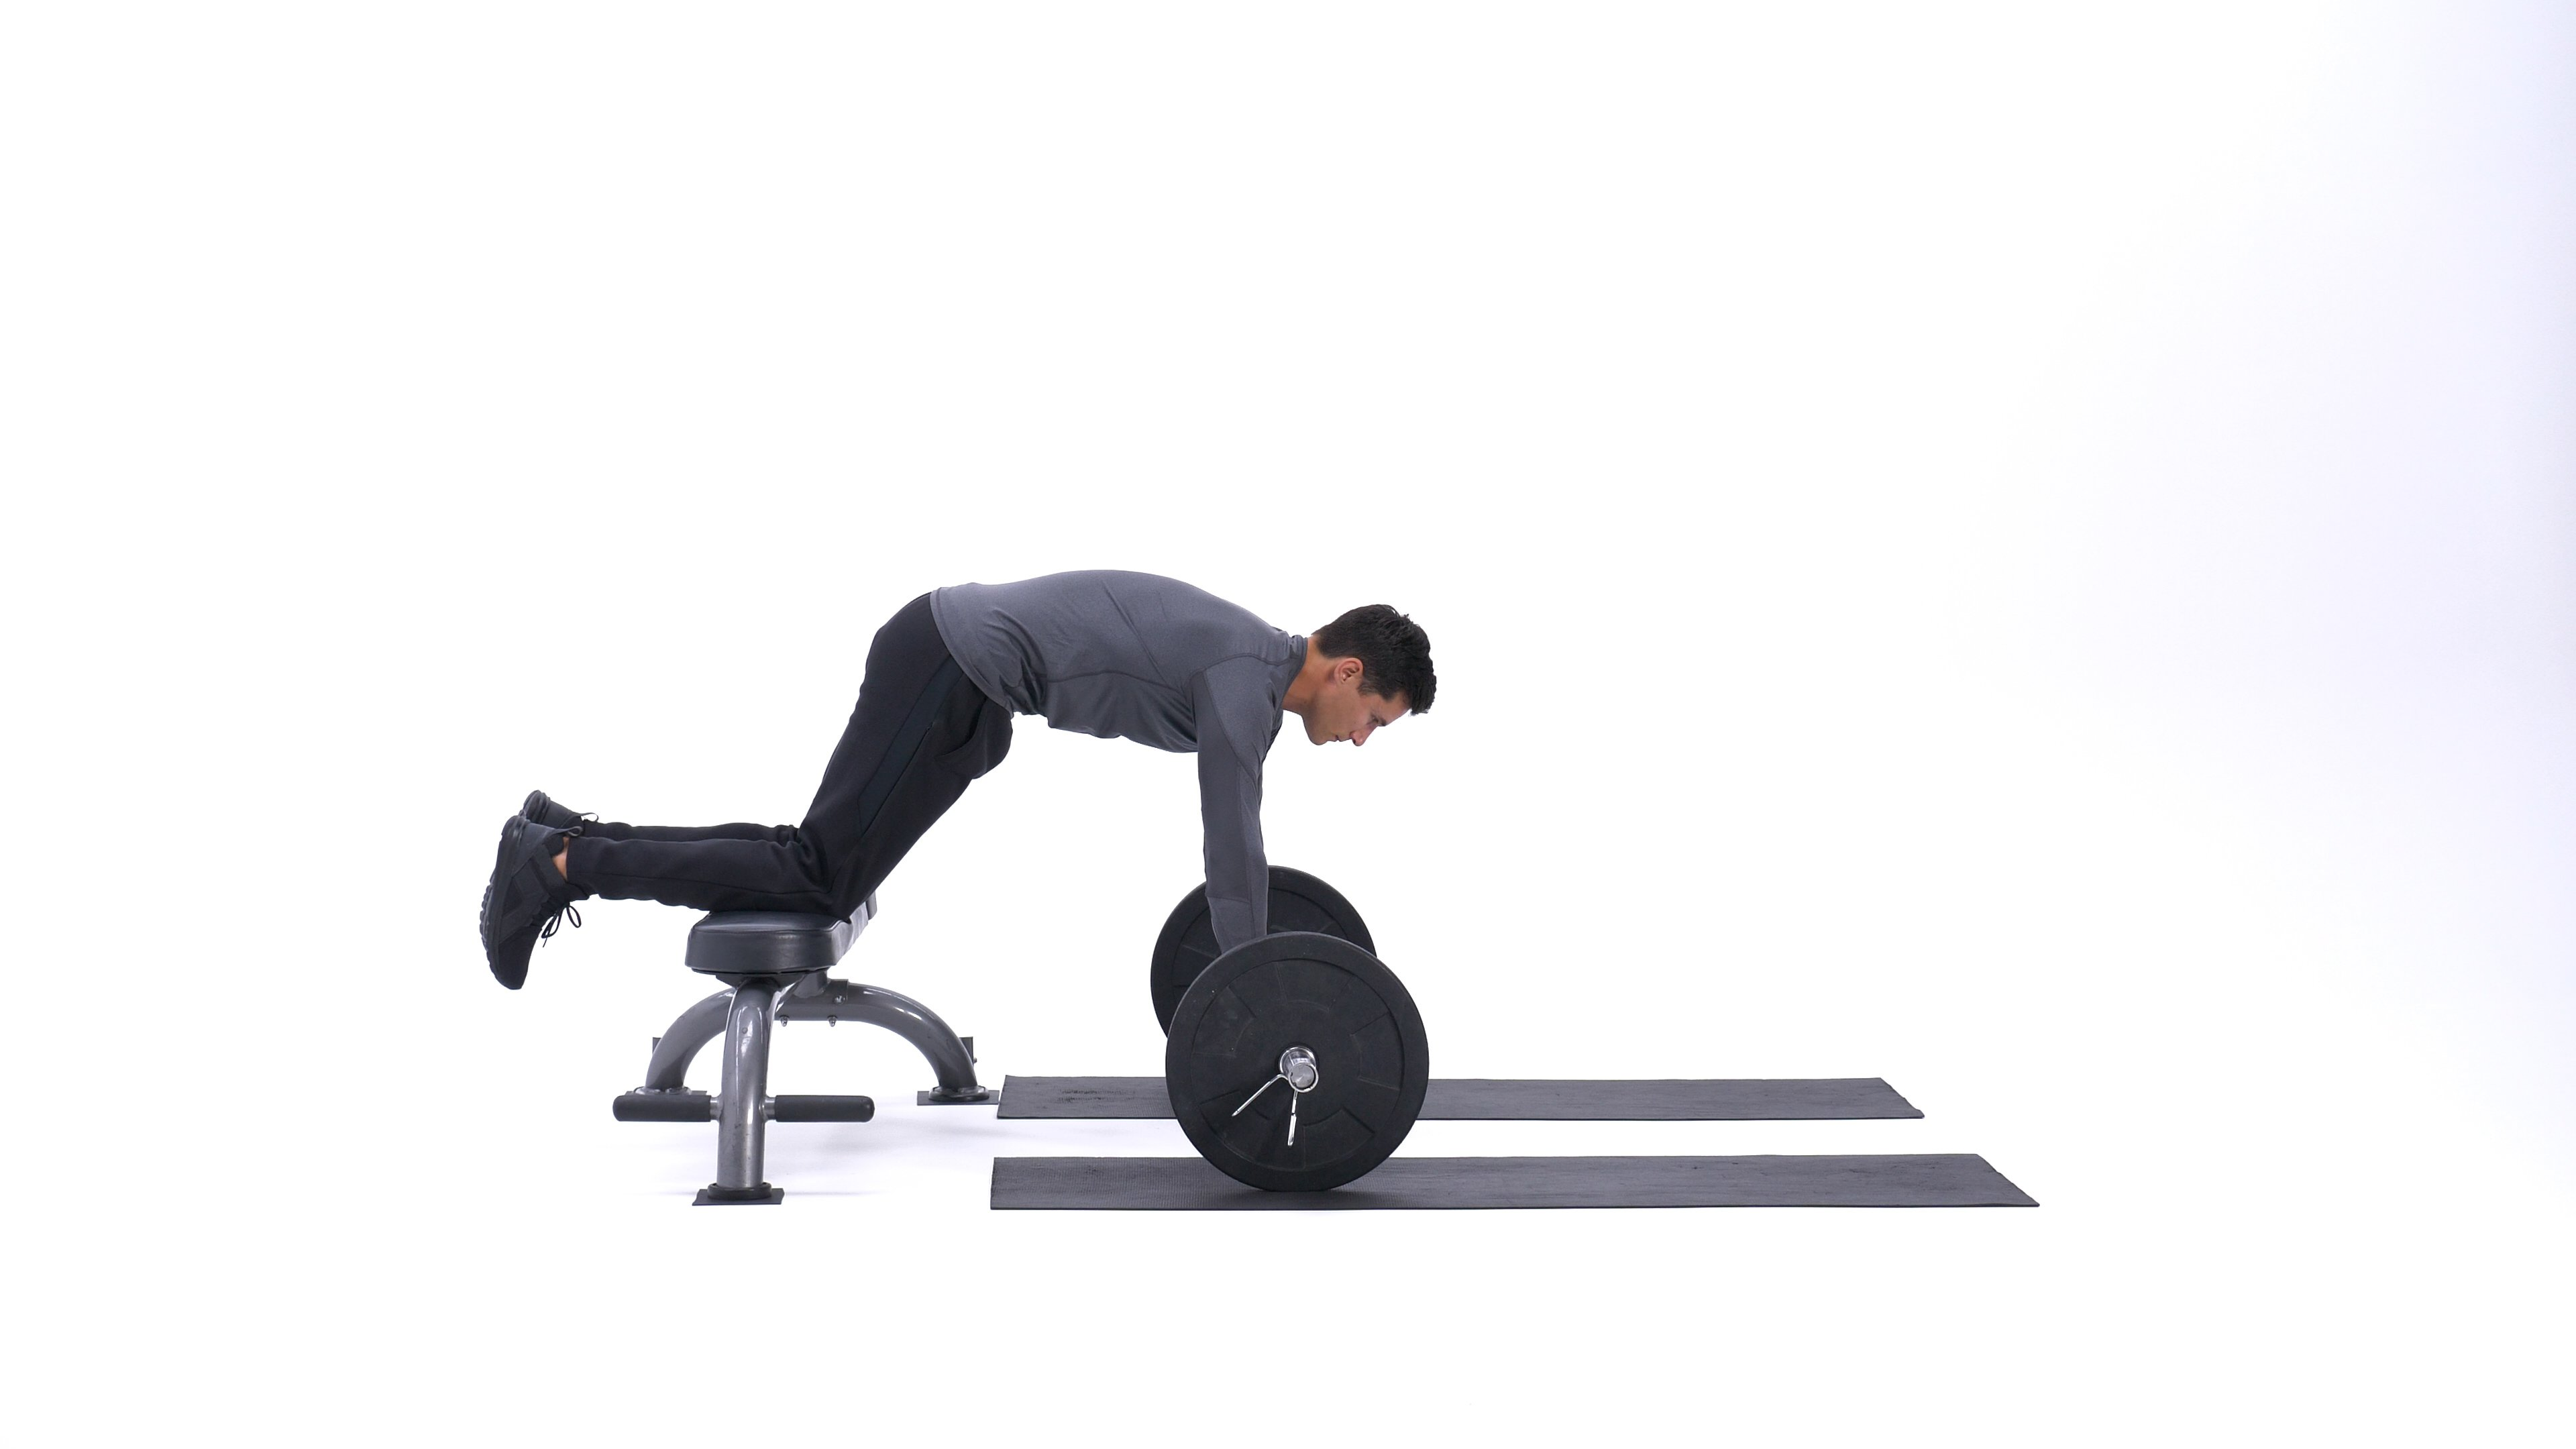 Bench barbell roll-out image